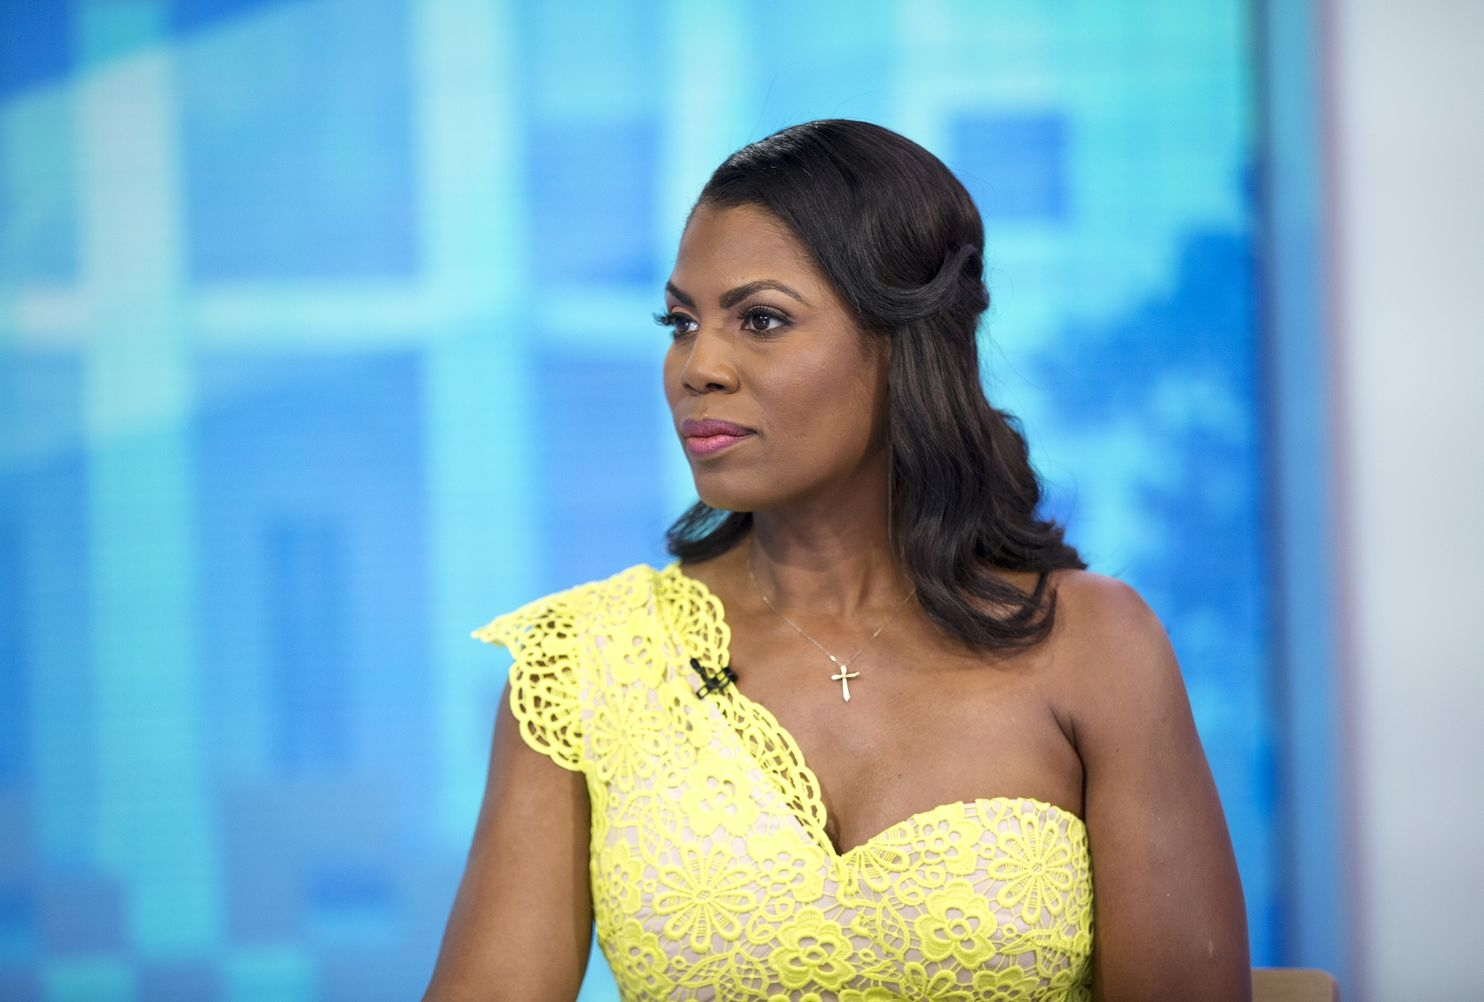 Trump calls Manigault Newman 'that dog' as she continues publicity tour